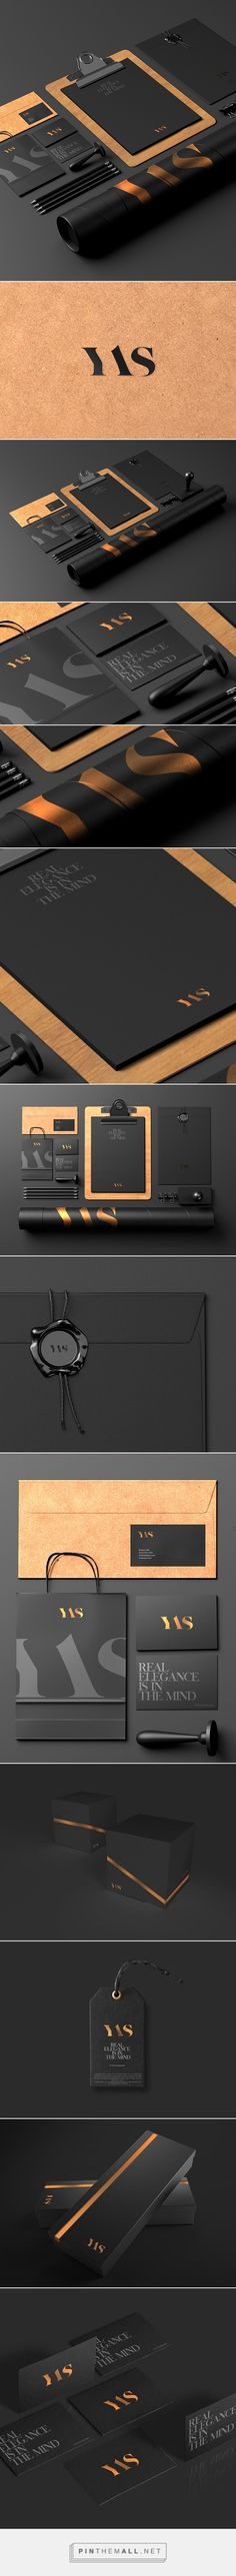 YAS - accessories for men on Behance by Sebastian Bednarek curated by Packaging Diva PD. This is gorgeous identity packaging branding. Design Corporativo, Logo Design, Brand Identity Design, Graphic Design Branding, Packaging Design, Brand Design, Corporate Design, Corporate Branding, Identity Branding